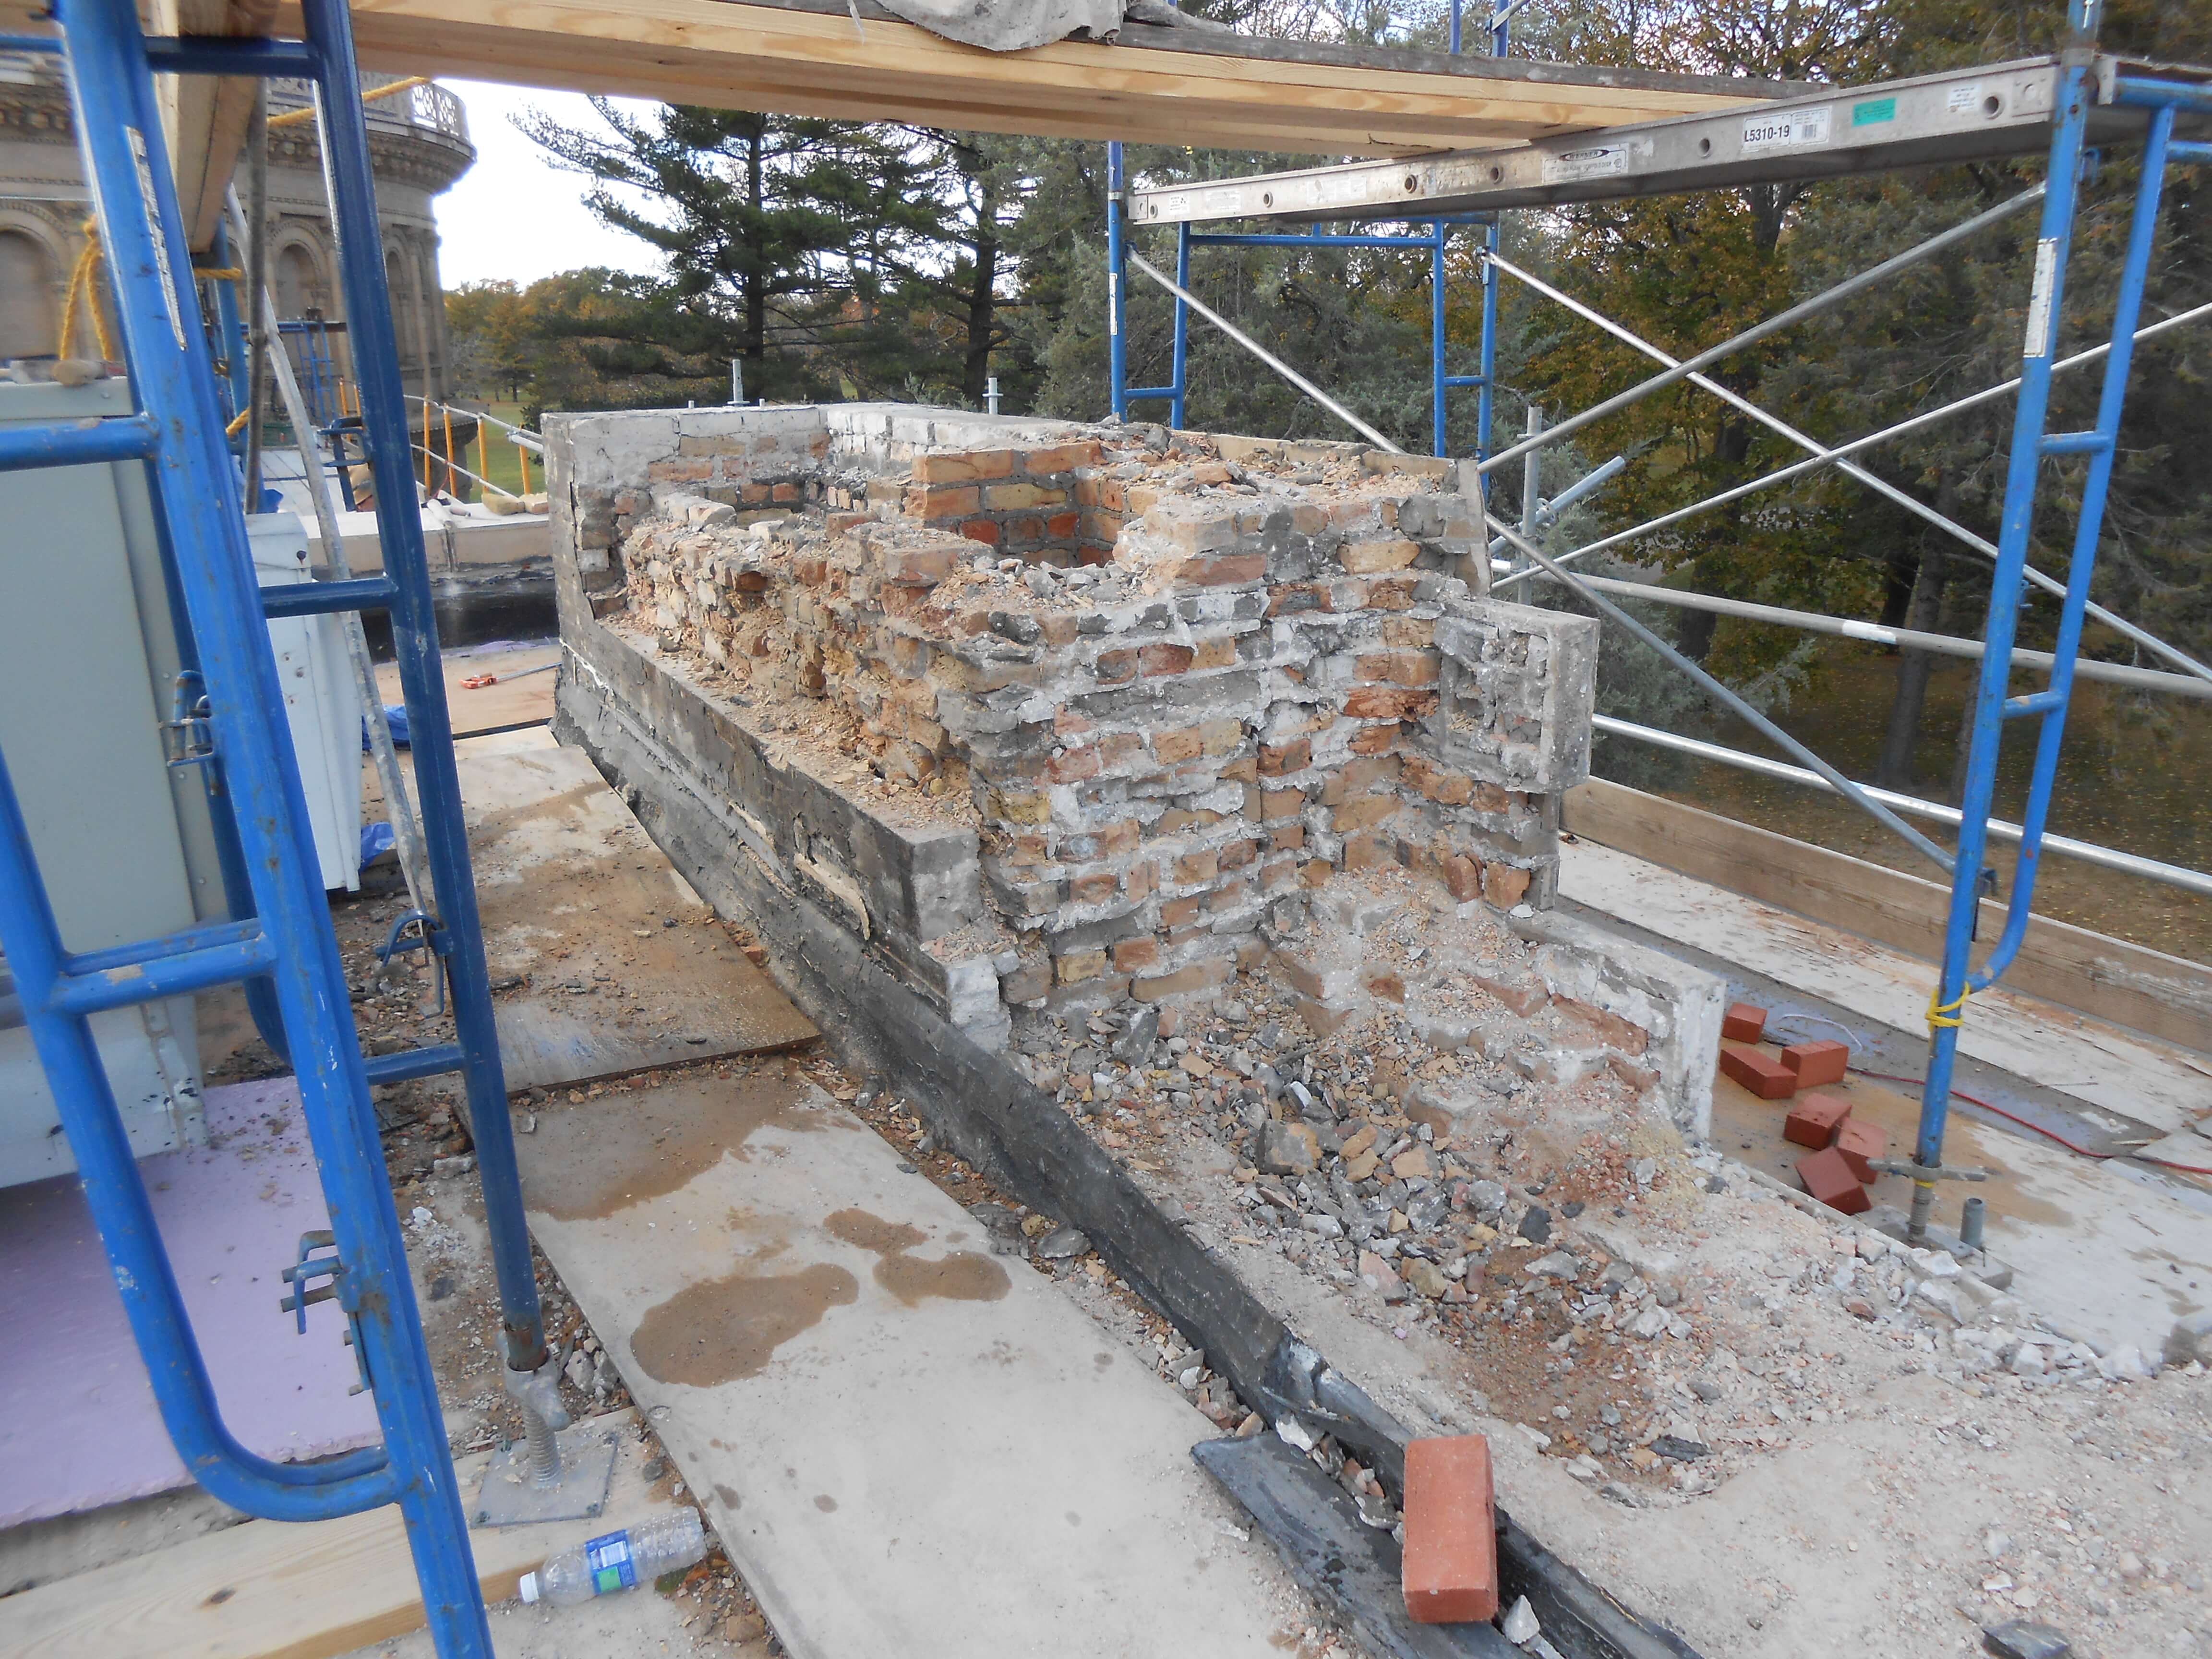 Walls Restoration Work Yerkes Observatory, Williams Bay WI